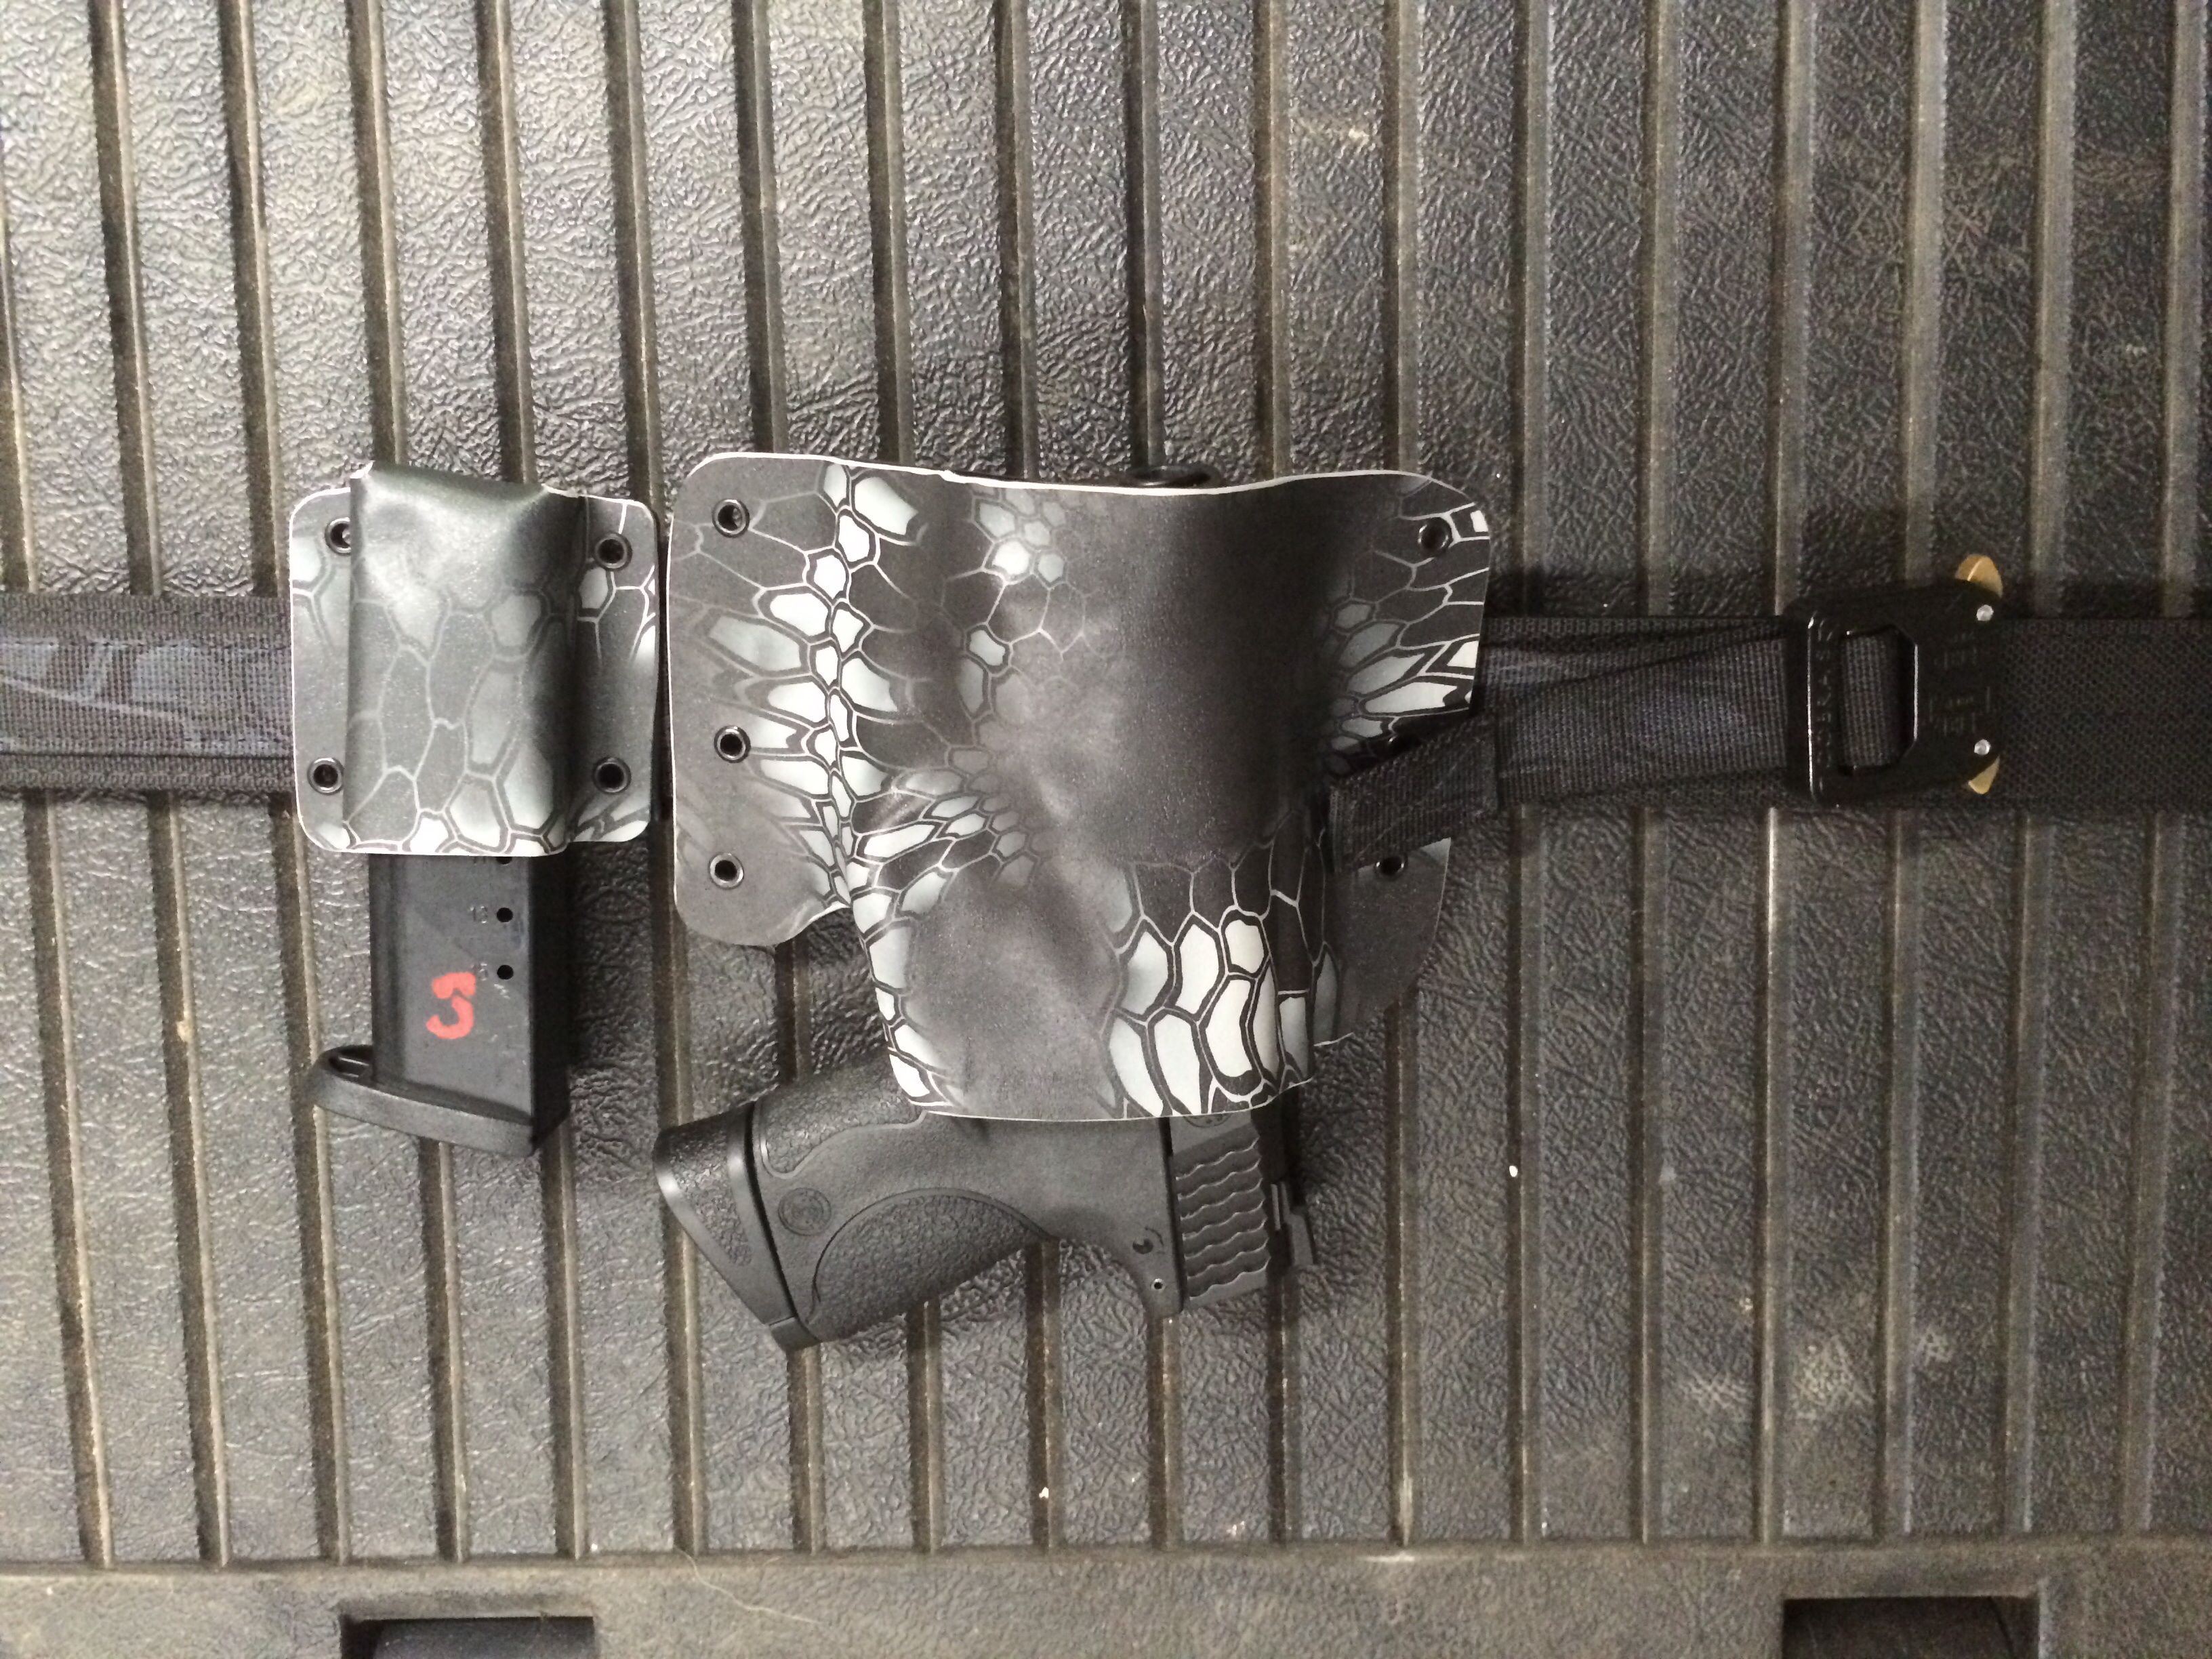 M&P compact holster ( Kydex)-image.jpg